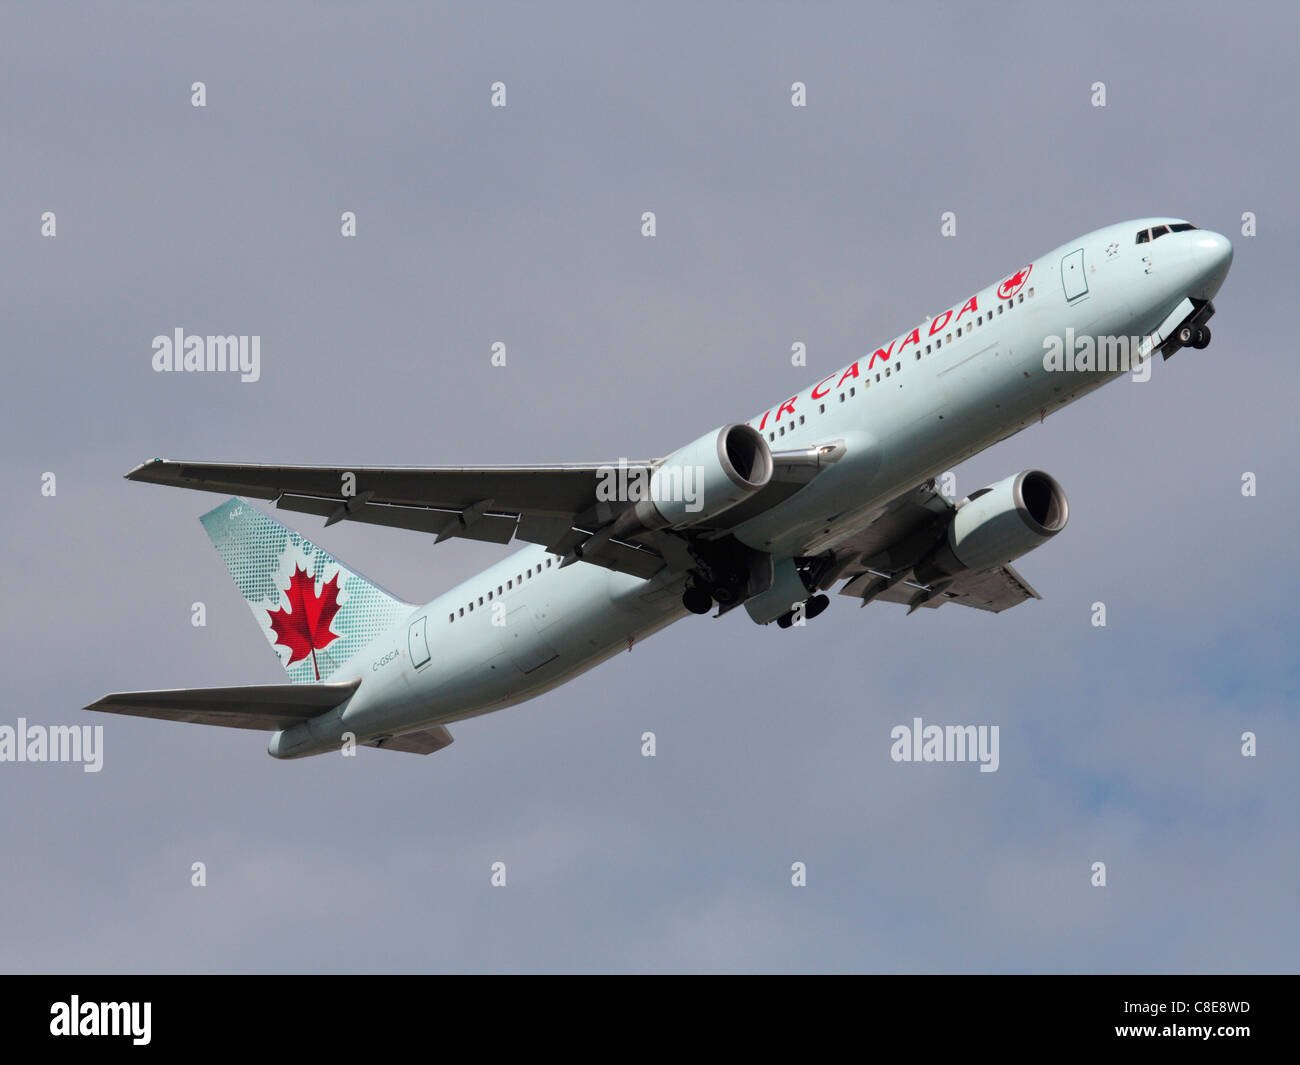 Air Canada Boeing 767-300ER passenger jet plane climbing on takeoff and retracting its undercarriage - Stock Image